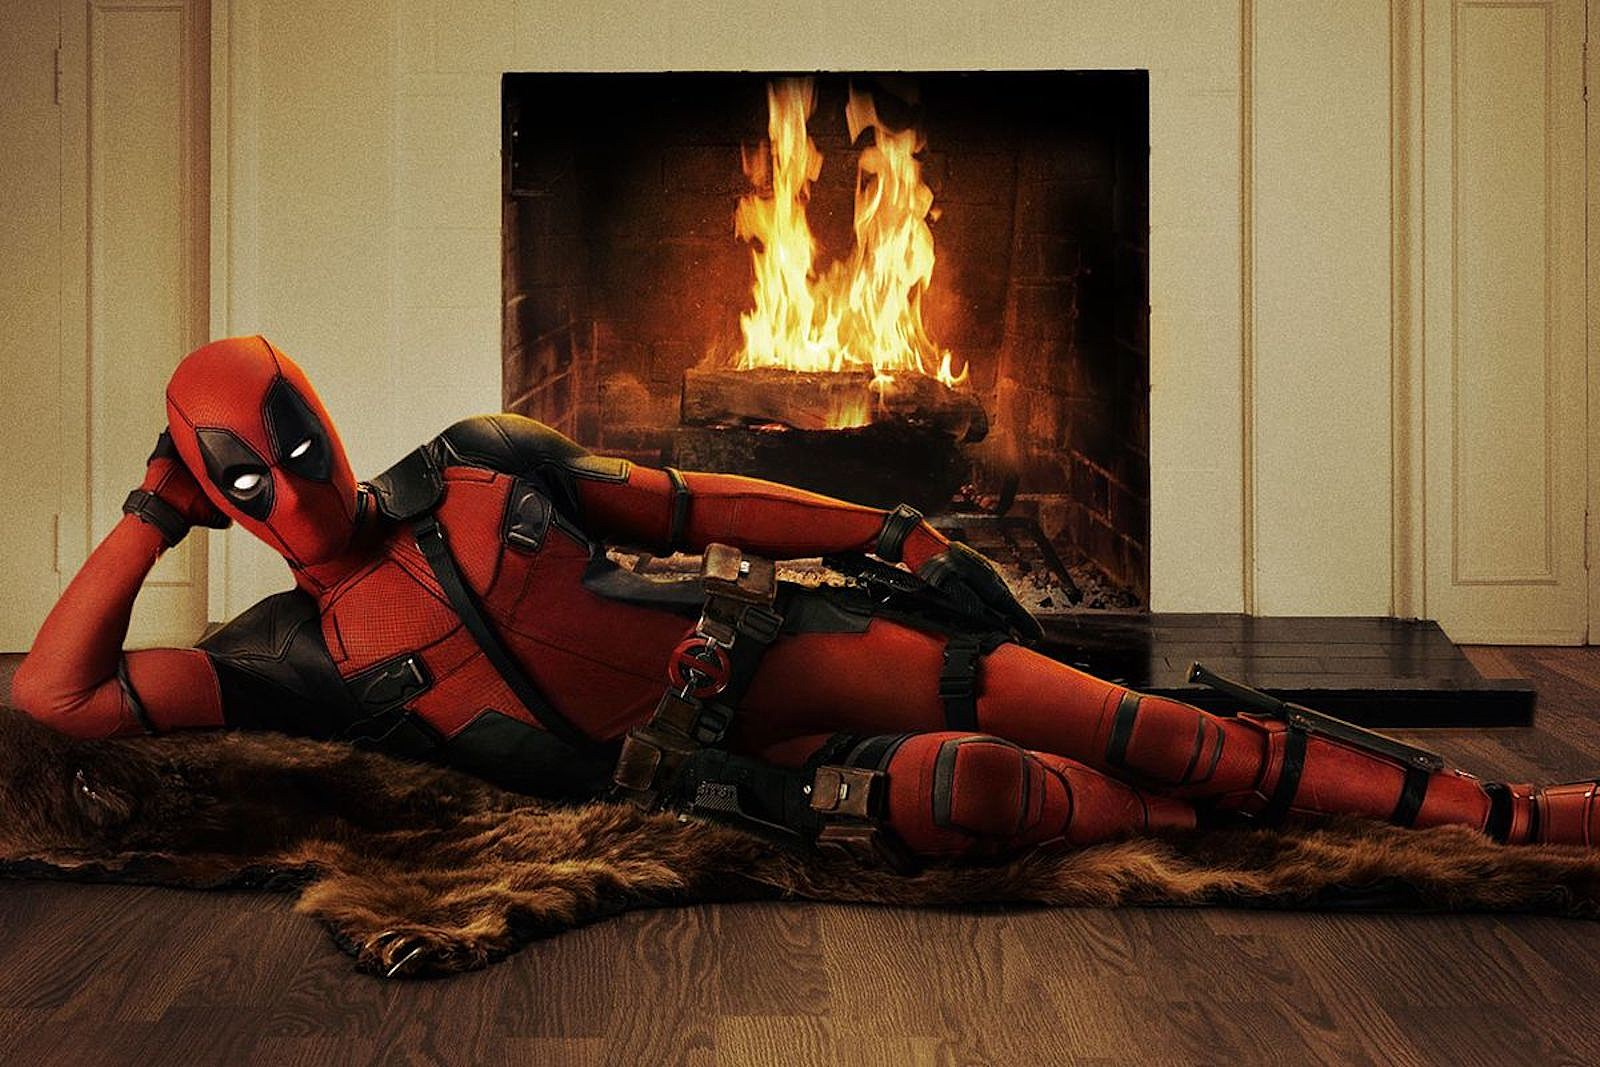 Deadpool 2' Is the Highest-Grossing X-Men Movie Ever